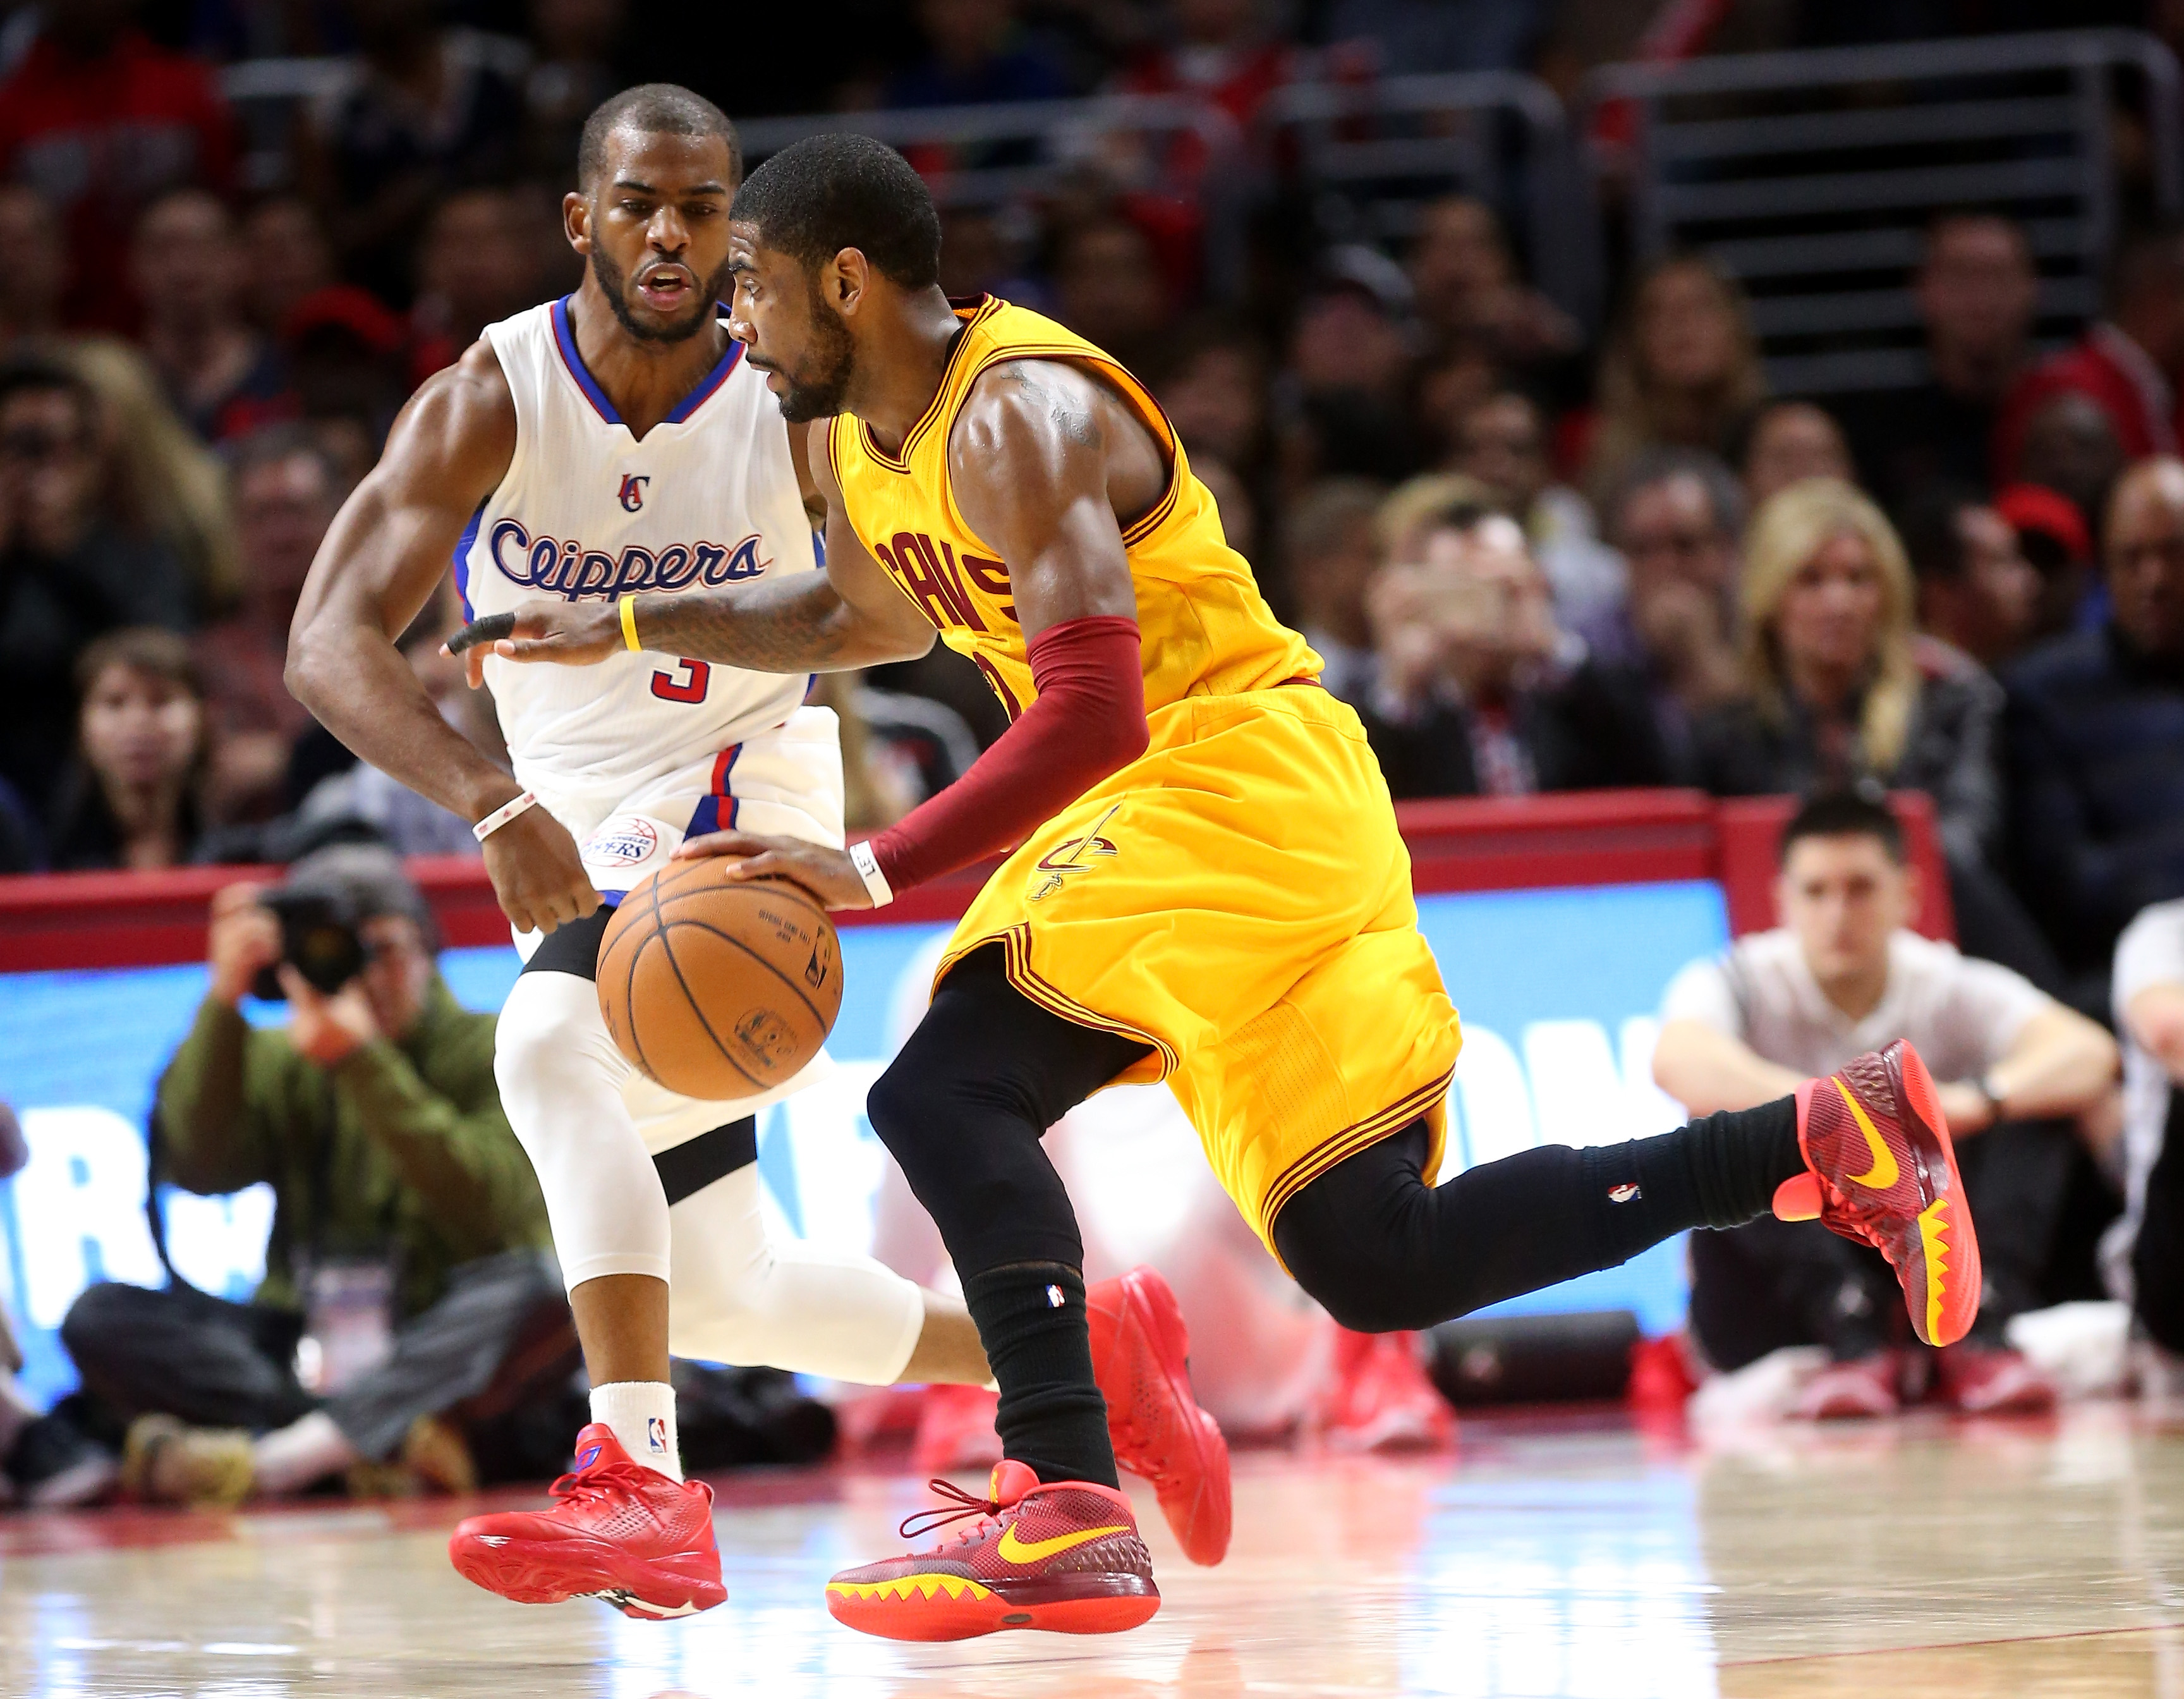 461659124-cleveland-cavaliers-v-los-angeles-clippers.jpg